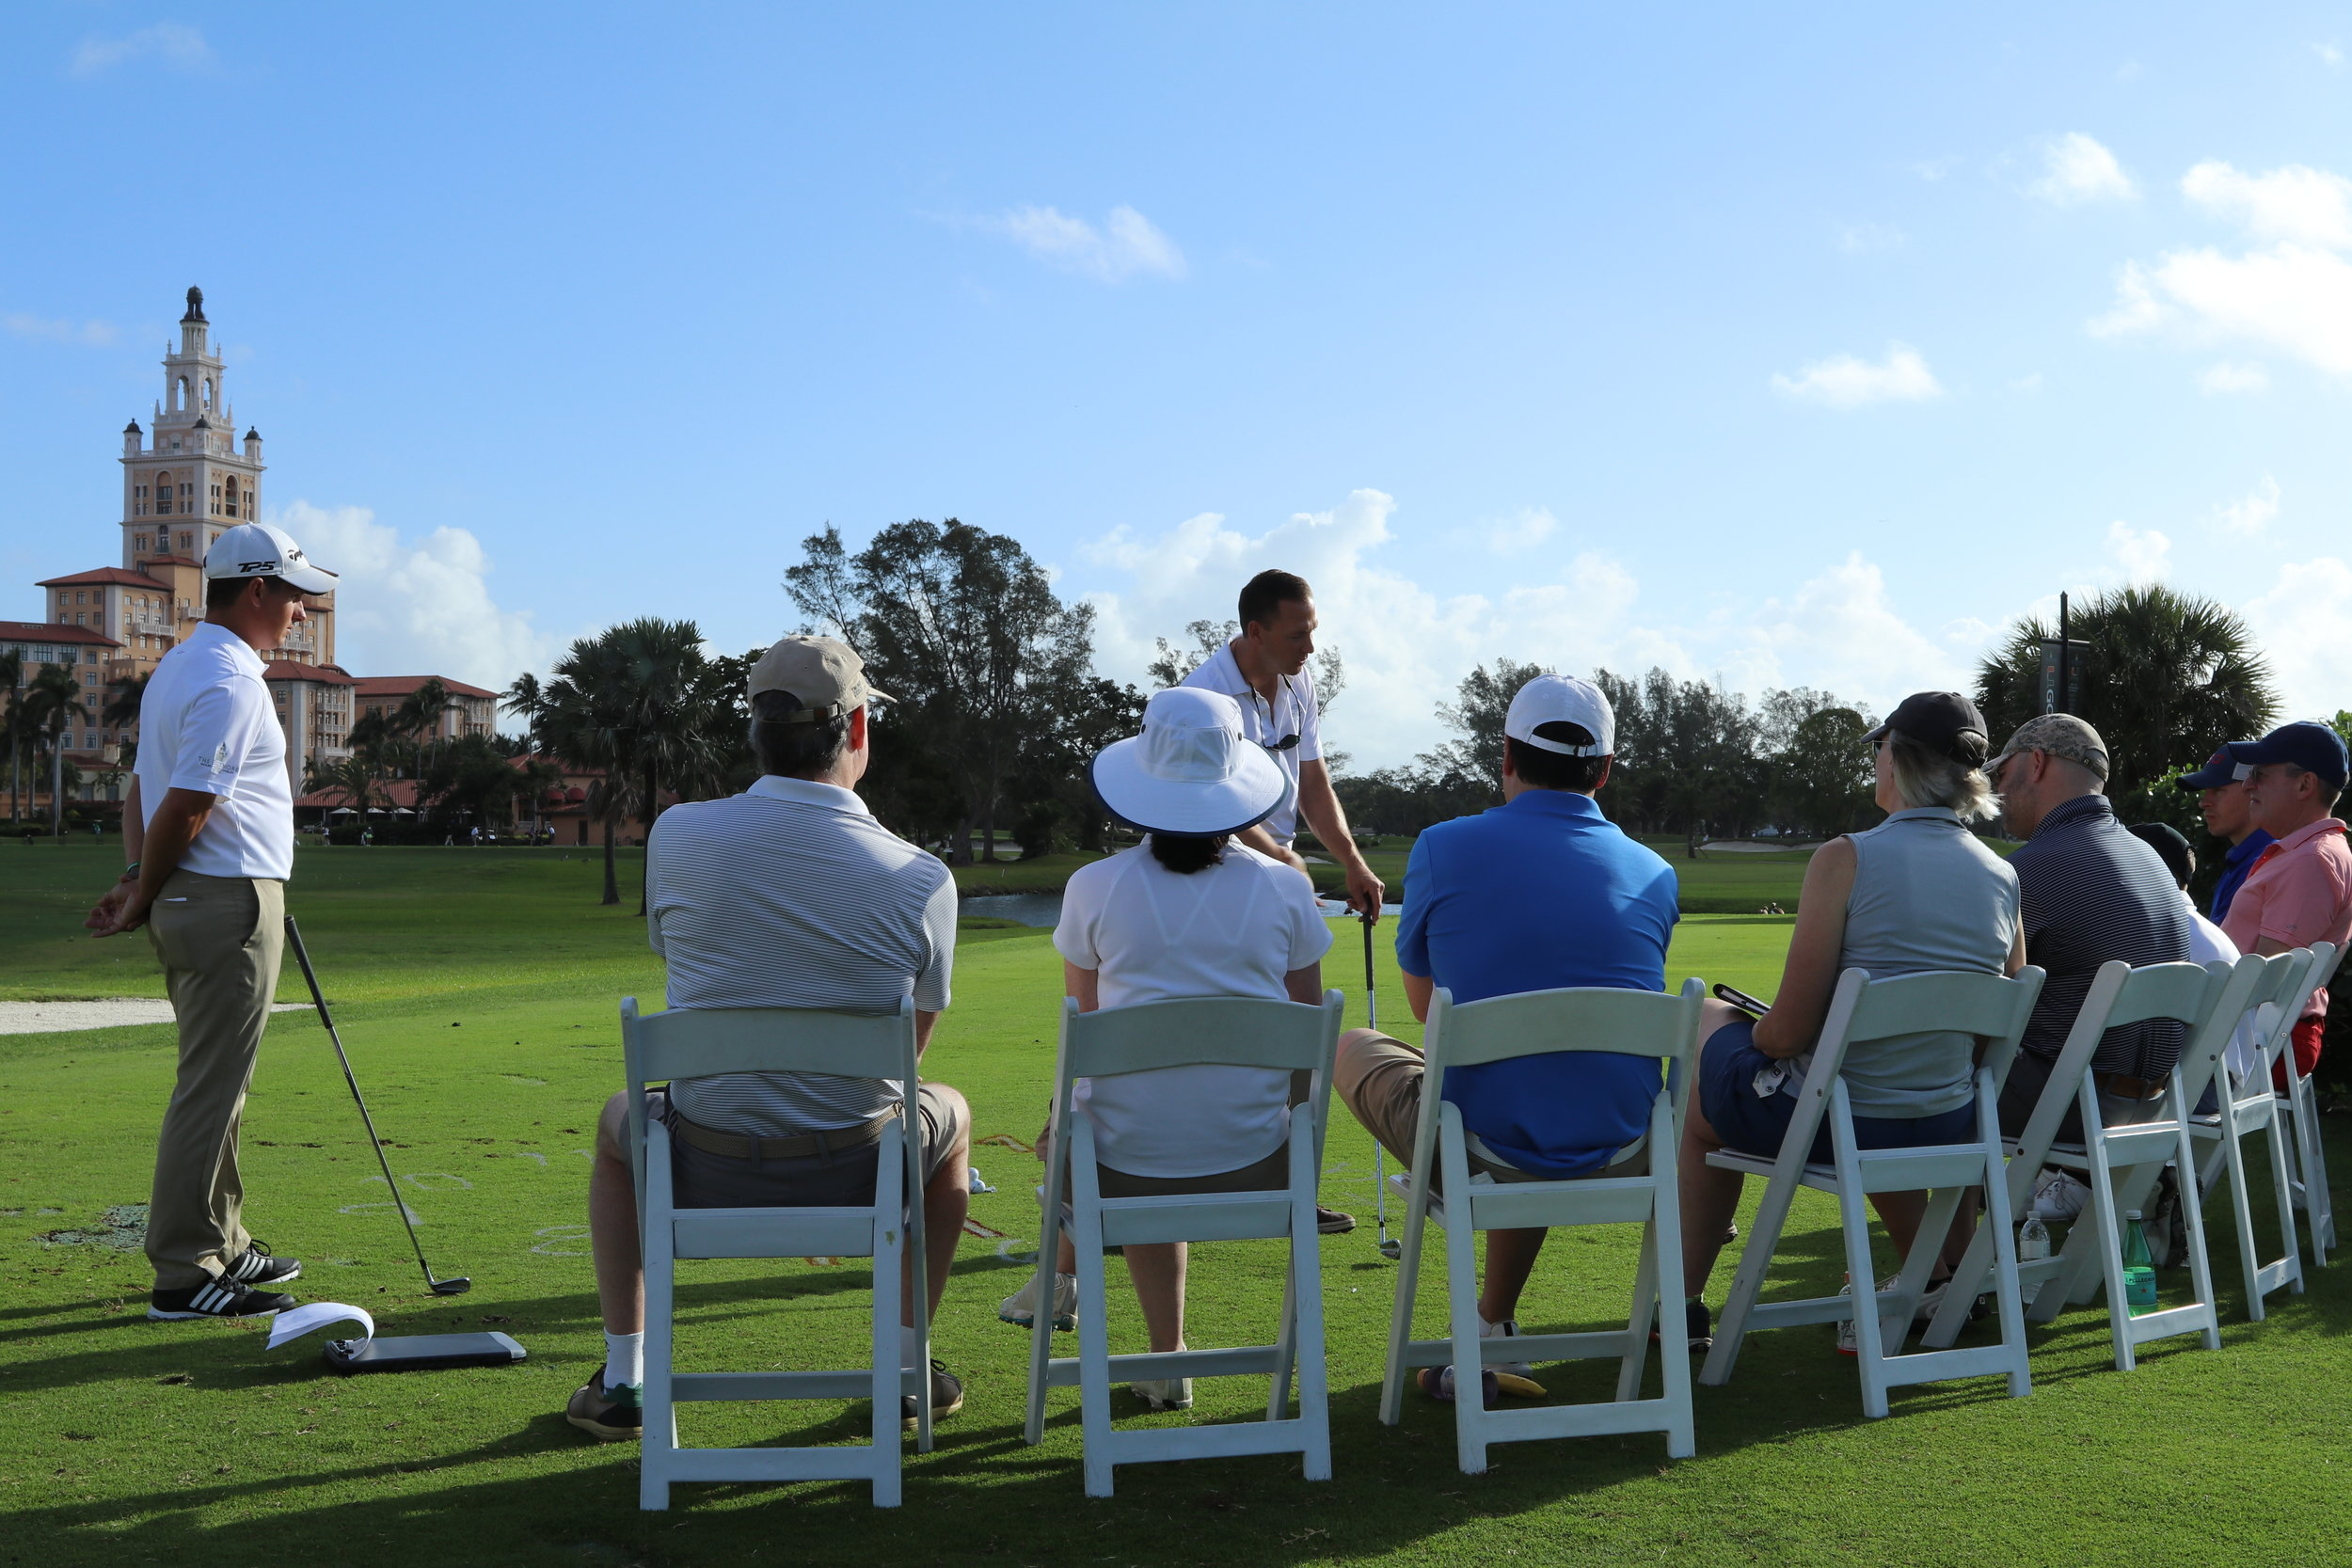 3 Day School - Available Every Tuesday-Thursday and Friday-SundayThis school is our most popular program and offers the most comprehensive itinerary for total game improvement. Many players will take 5 shots off their handicap while applying the system used in this golf school. Do yourself a favor this golf season and get prepared to play the best golf of your life!-20 Hour Program-3:1 Student to Instructor Ratio-School Led by a Master or Lead Master Instructor-Digital Video Swing Analysis-TrackMan® Launch-Monitor Analysis-Personalized Instruction Video with Voice-over from your Instructor-Jim McLean Workbook-Includes lunch at The Biltmore on the first two days-On Course InstructionDay 1: — 8:00am-3:00pmDay 2: — 8:00am-4:00pmDay 3: — 8:00am-1:00pm